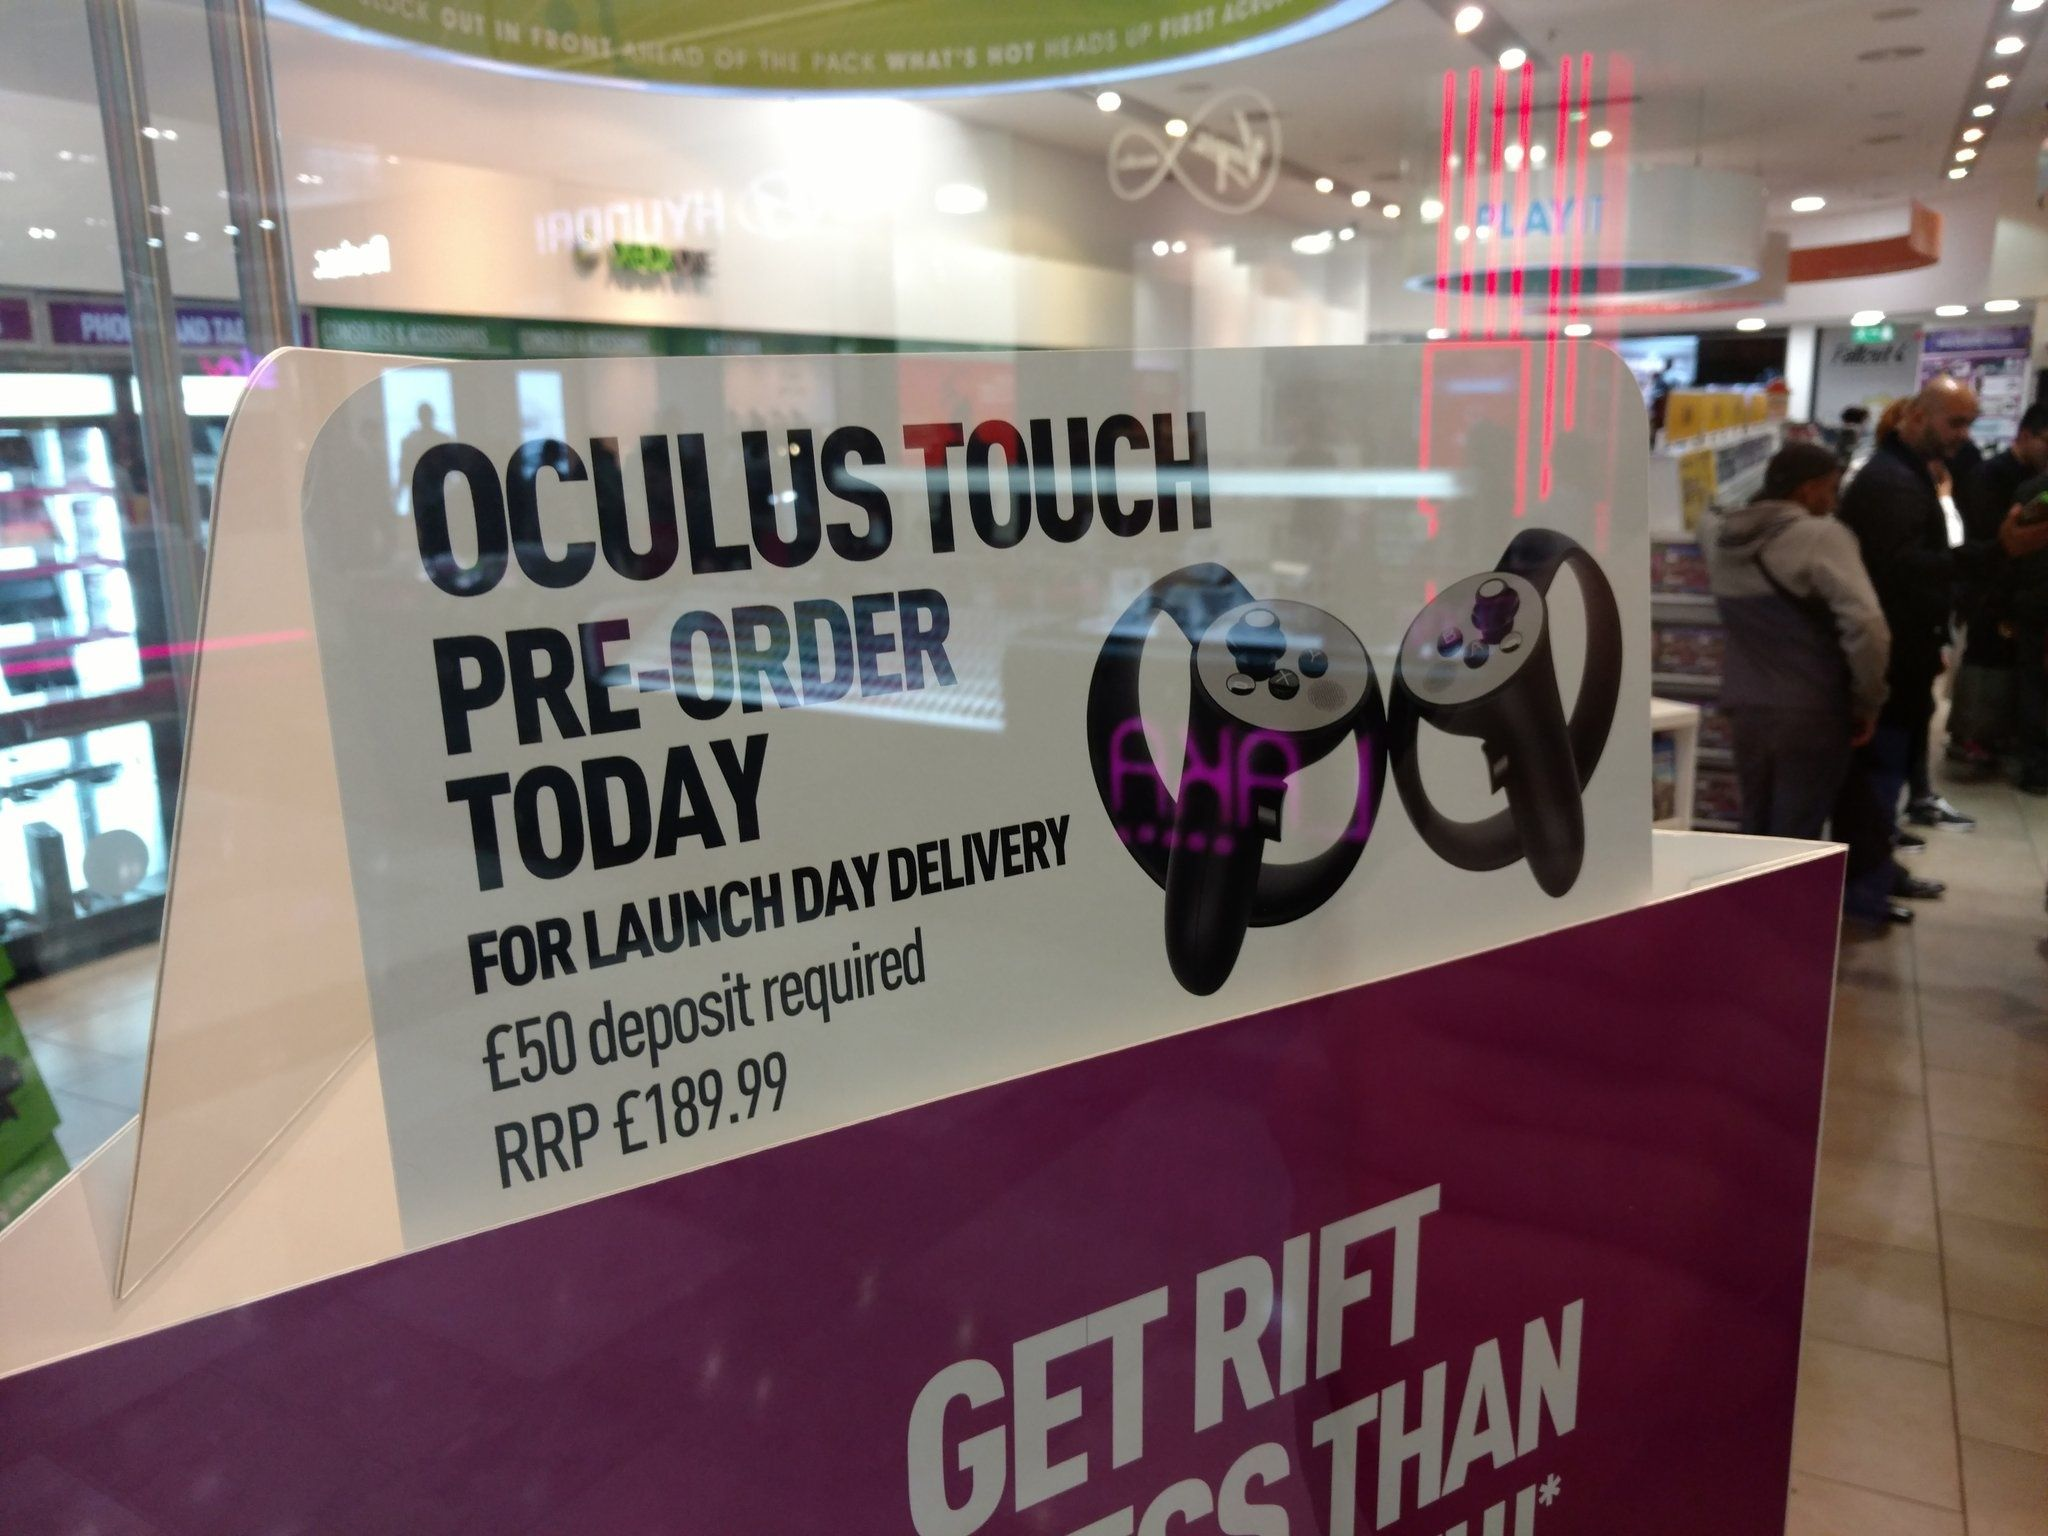 Oculus Touch starts pre-orders in UK for £190